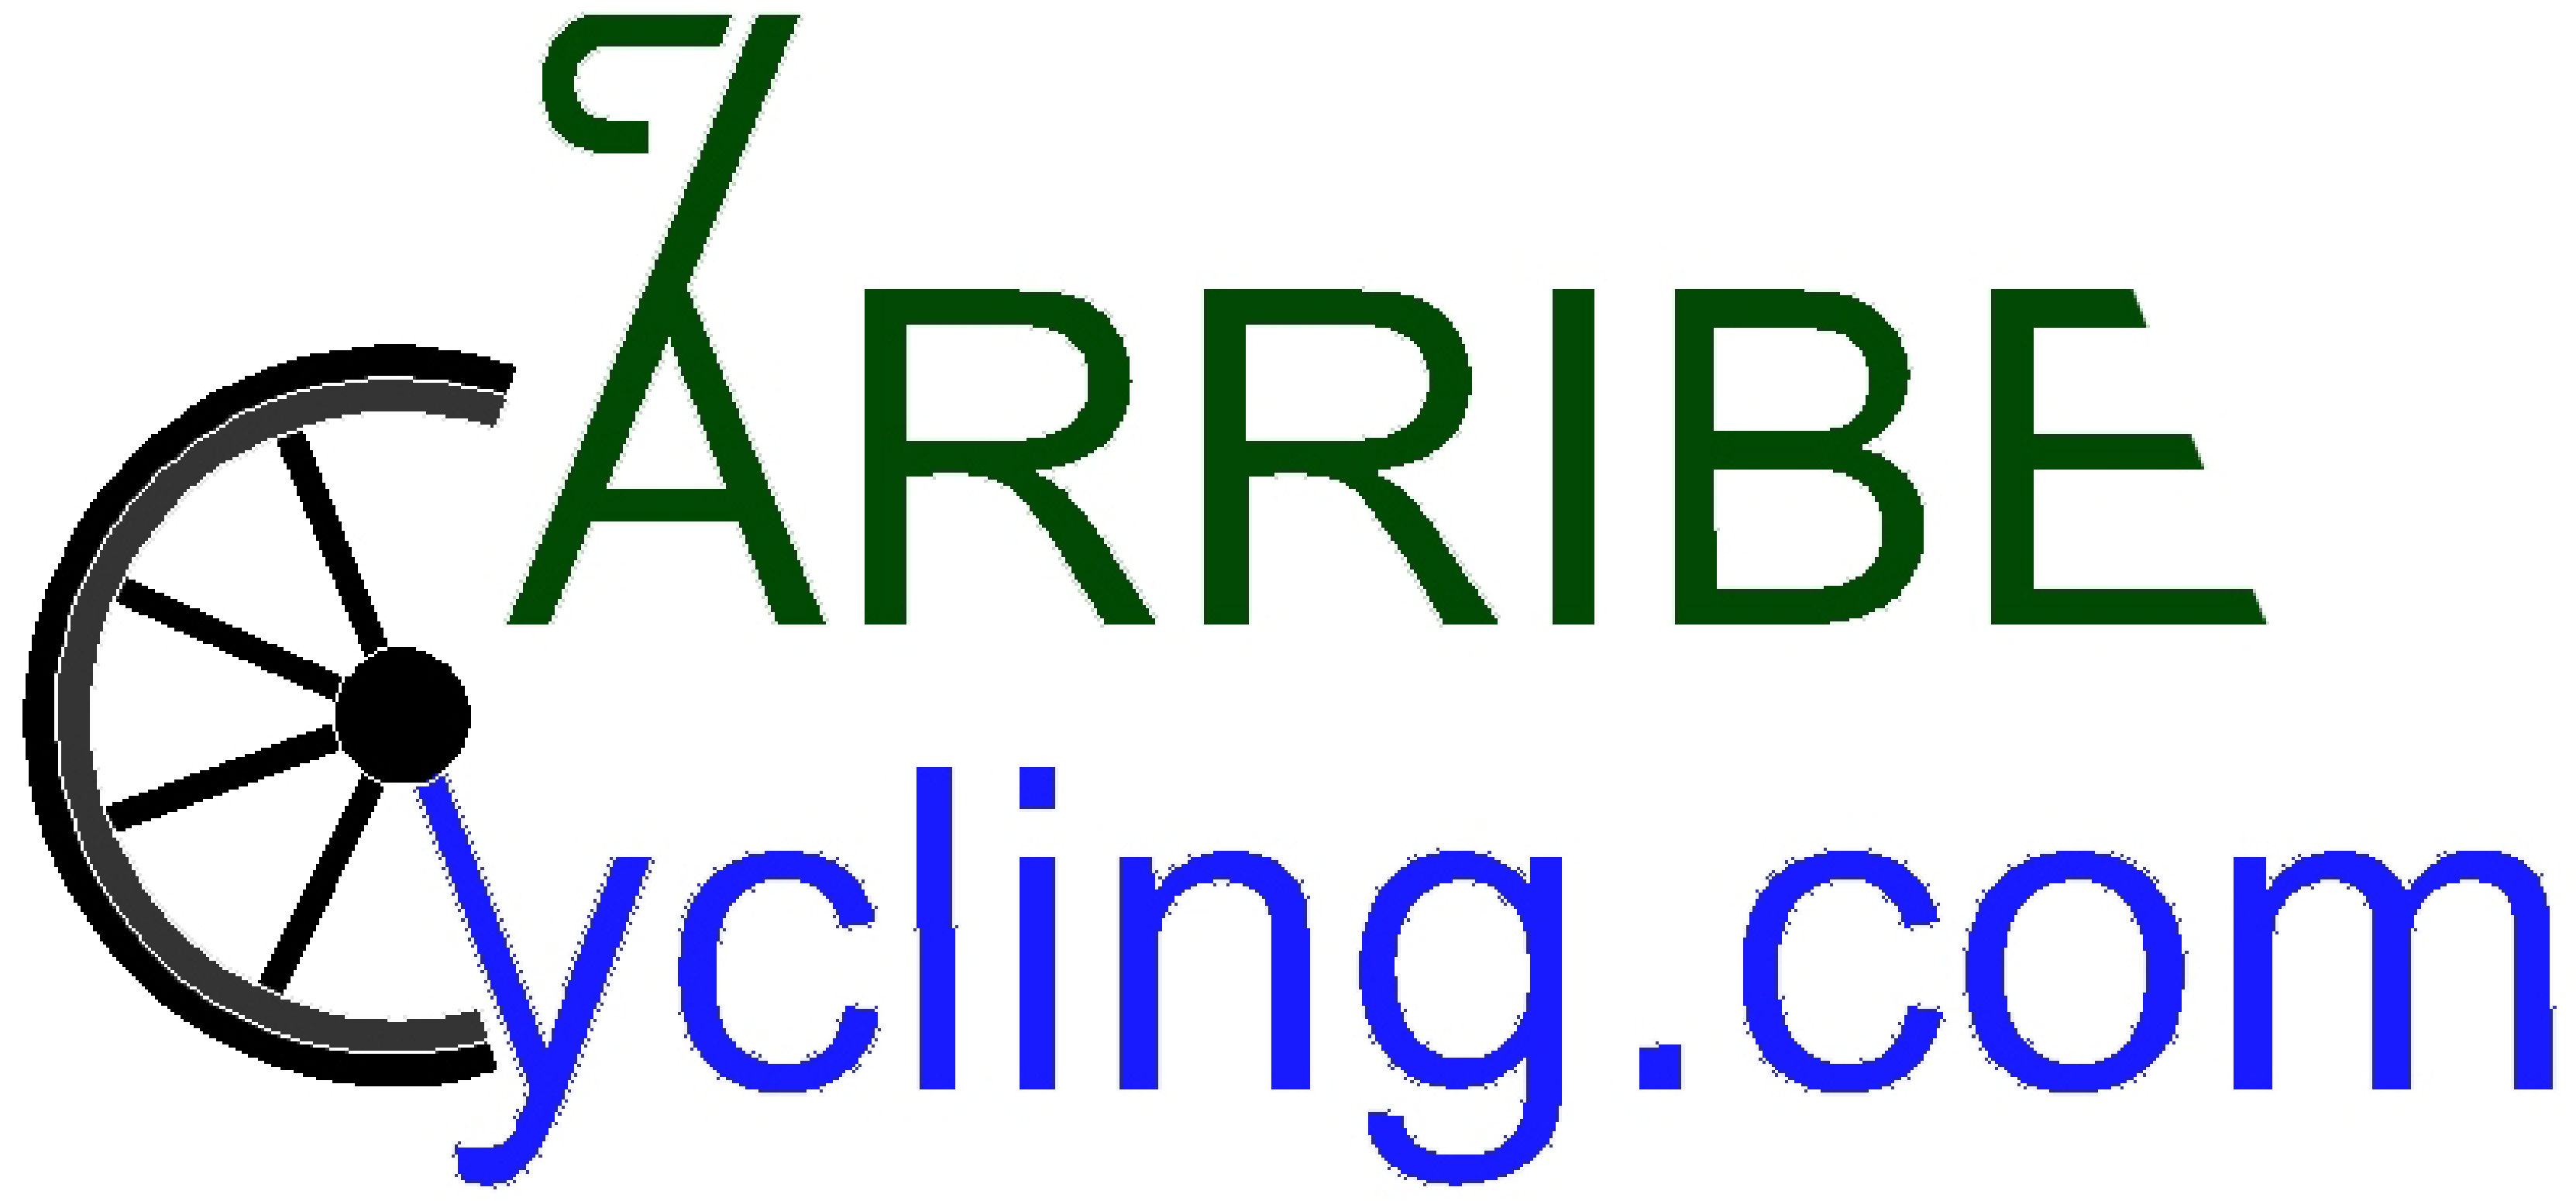 Carribecycling logoa